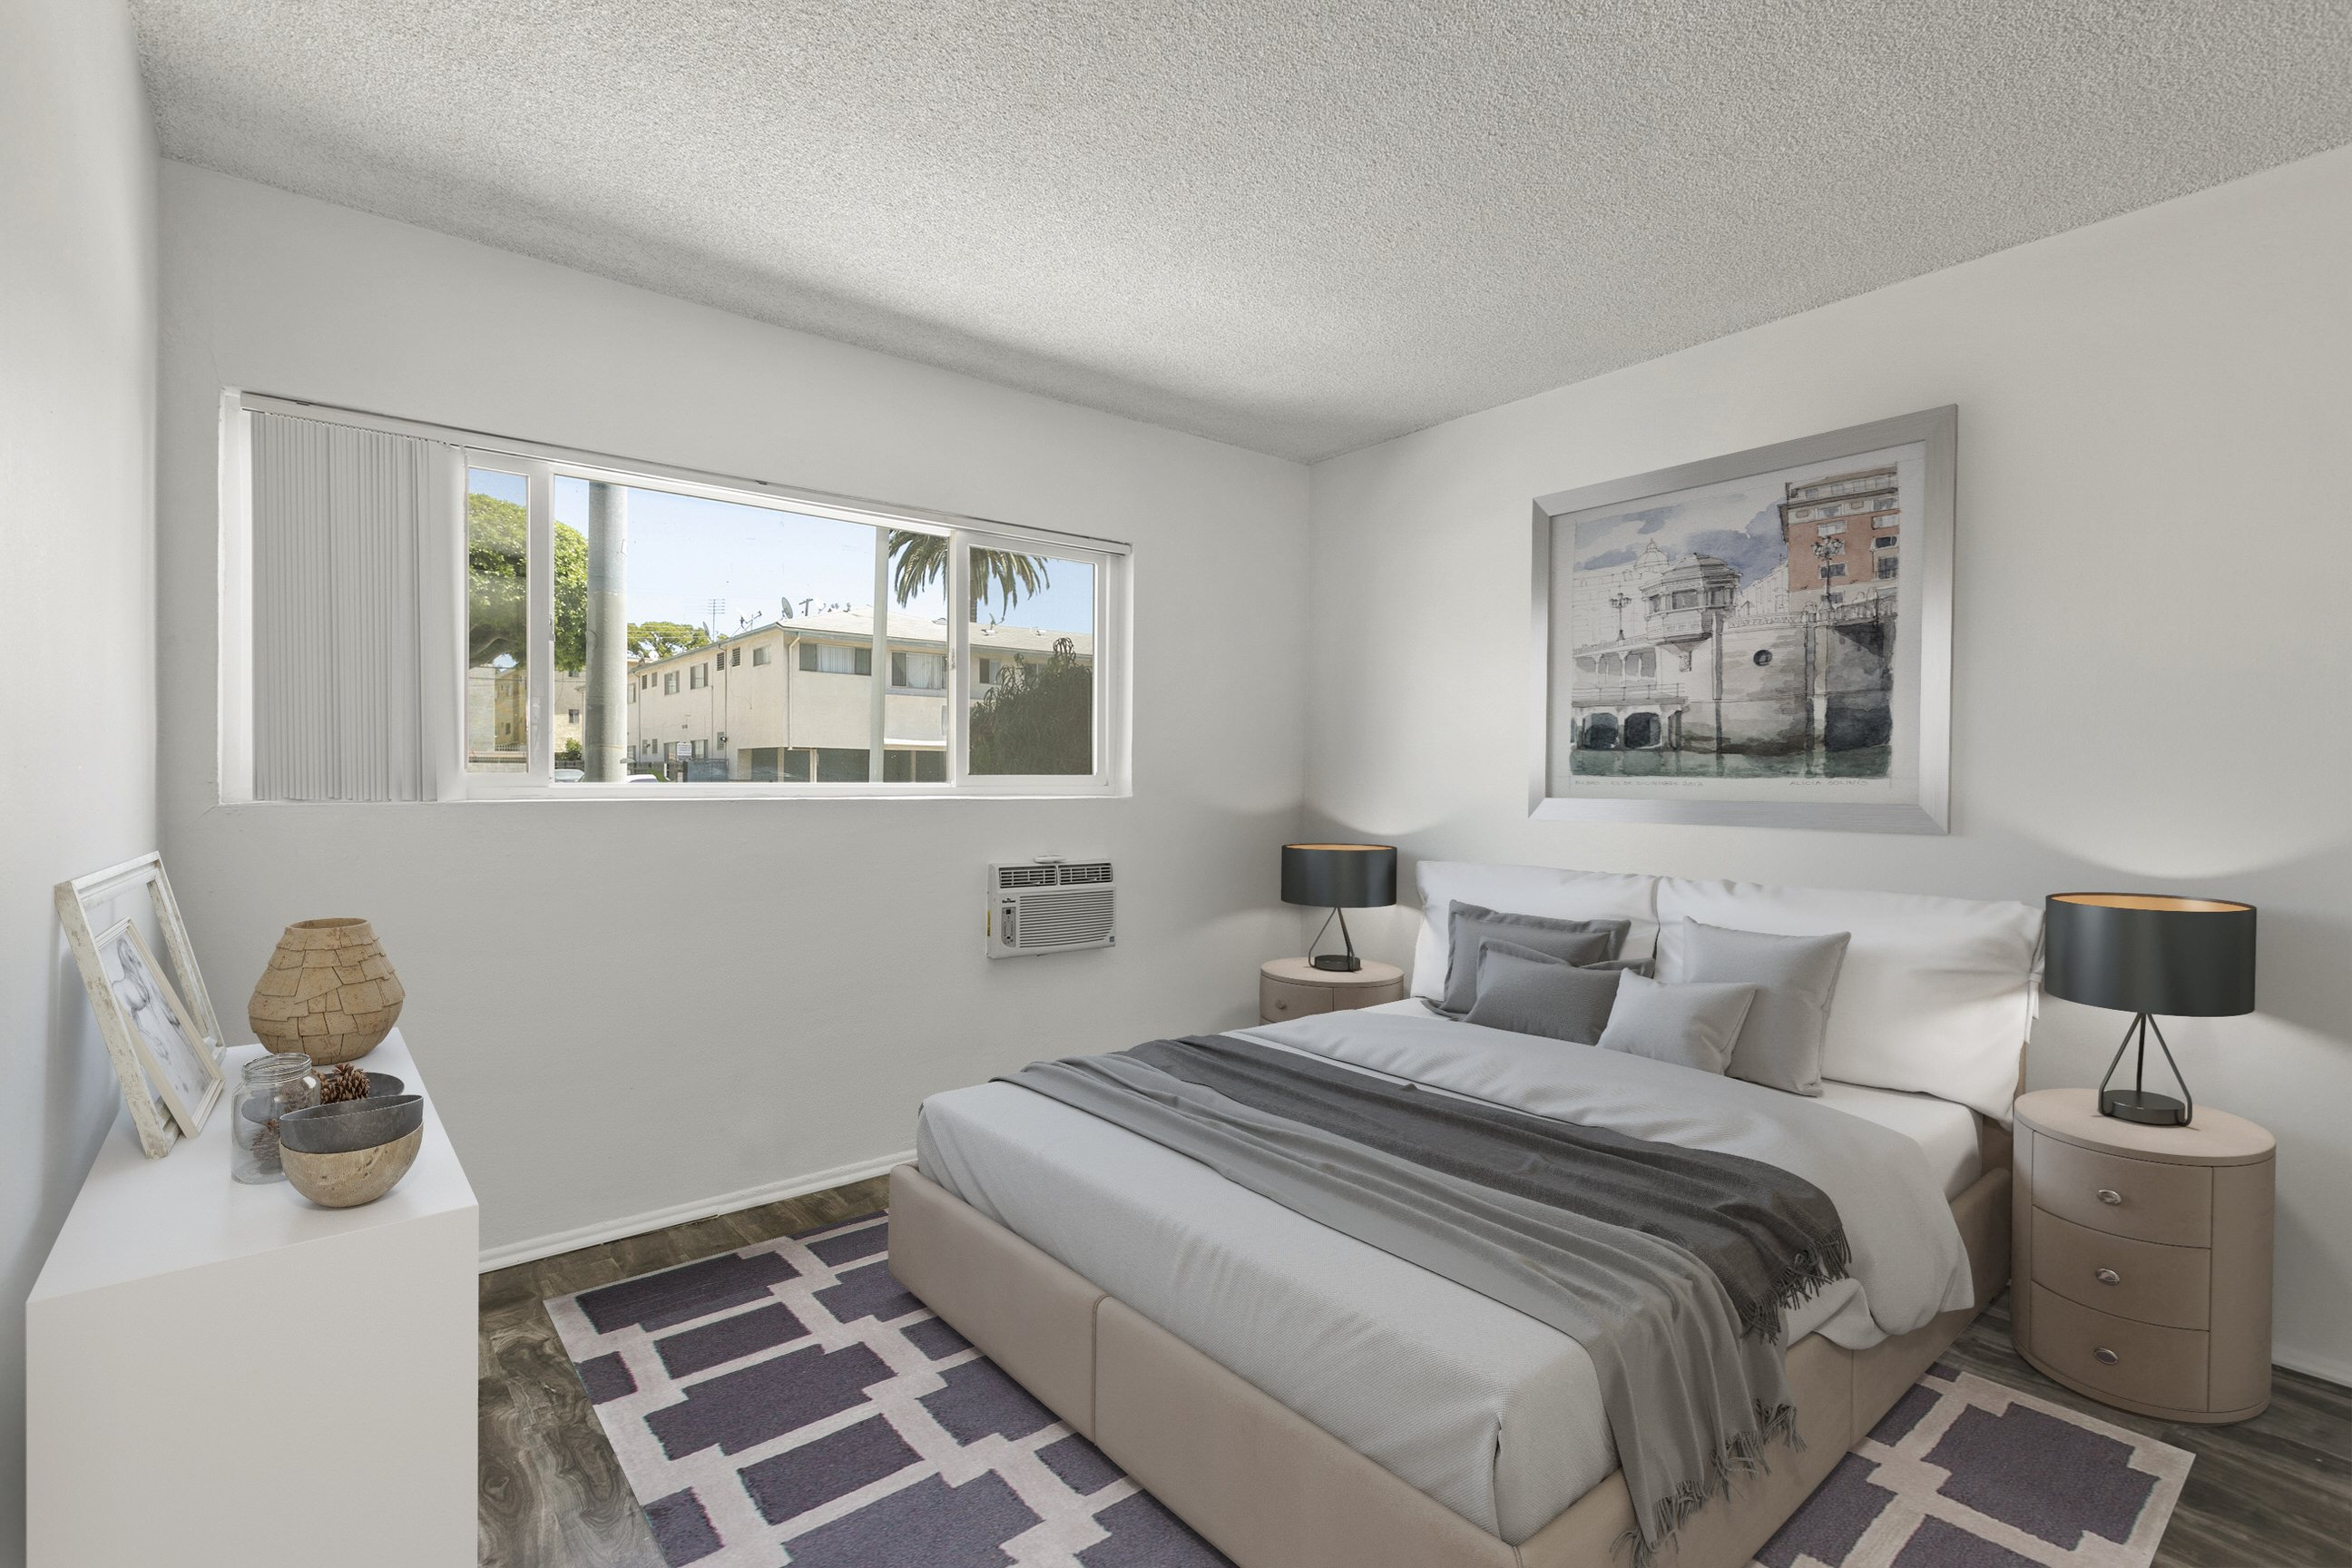 Bedroom at Pacific Rose Apartments, 10705 Rose Ave, Los Angeles, CA 90034